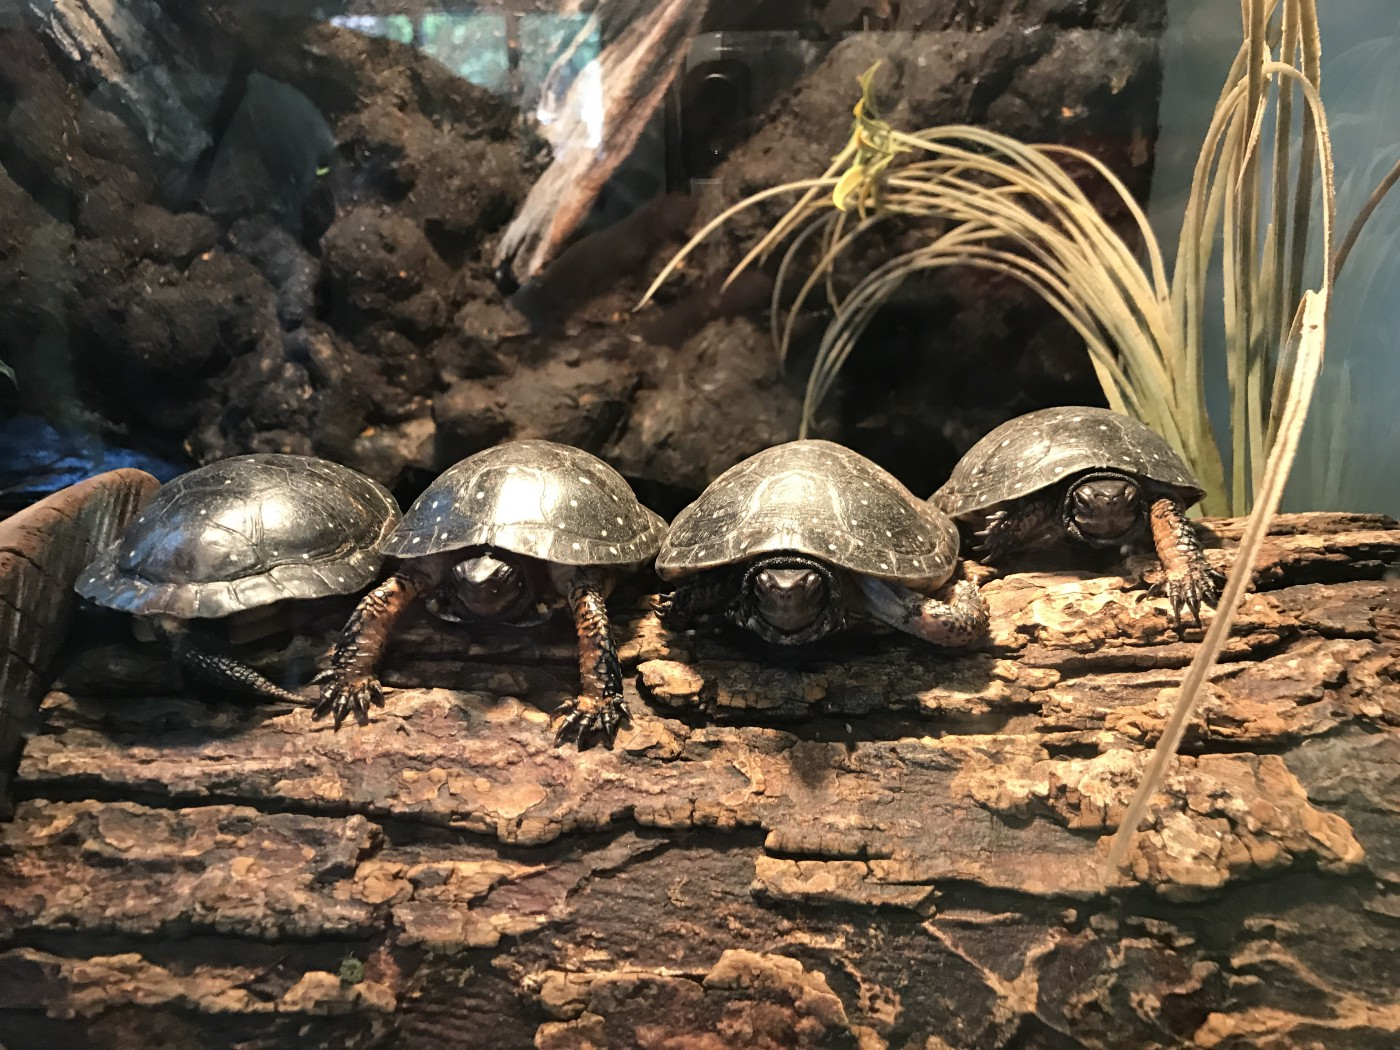 These little guys greet visitors to Bergen County Zoo located at Van Saun County Park in northern New Jersey. Photo by Francesca Di Meglio